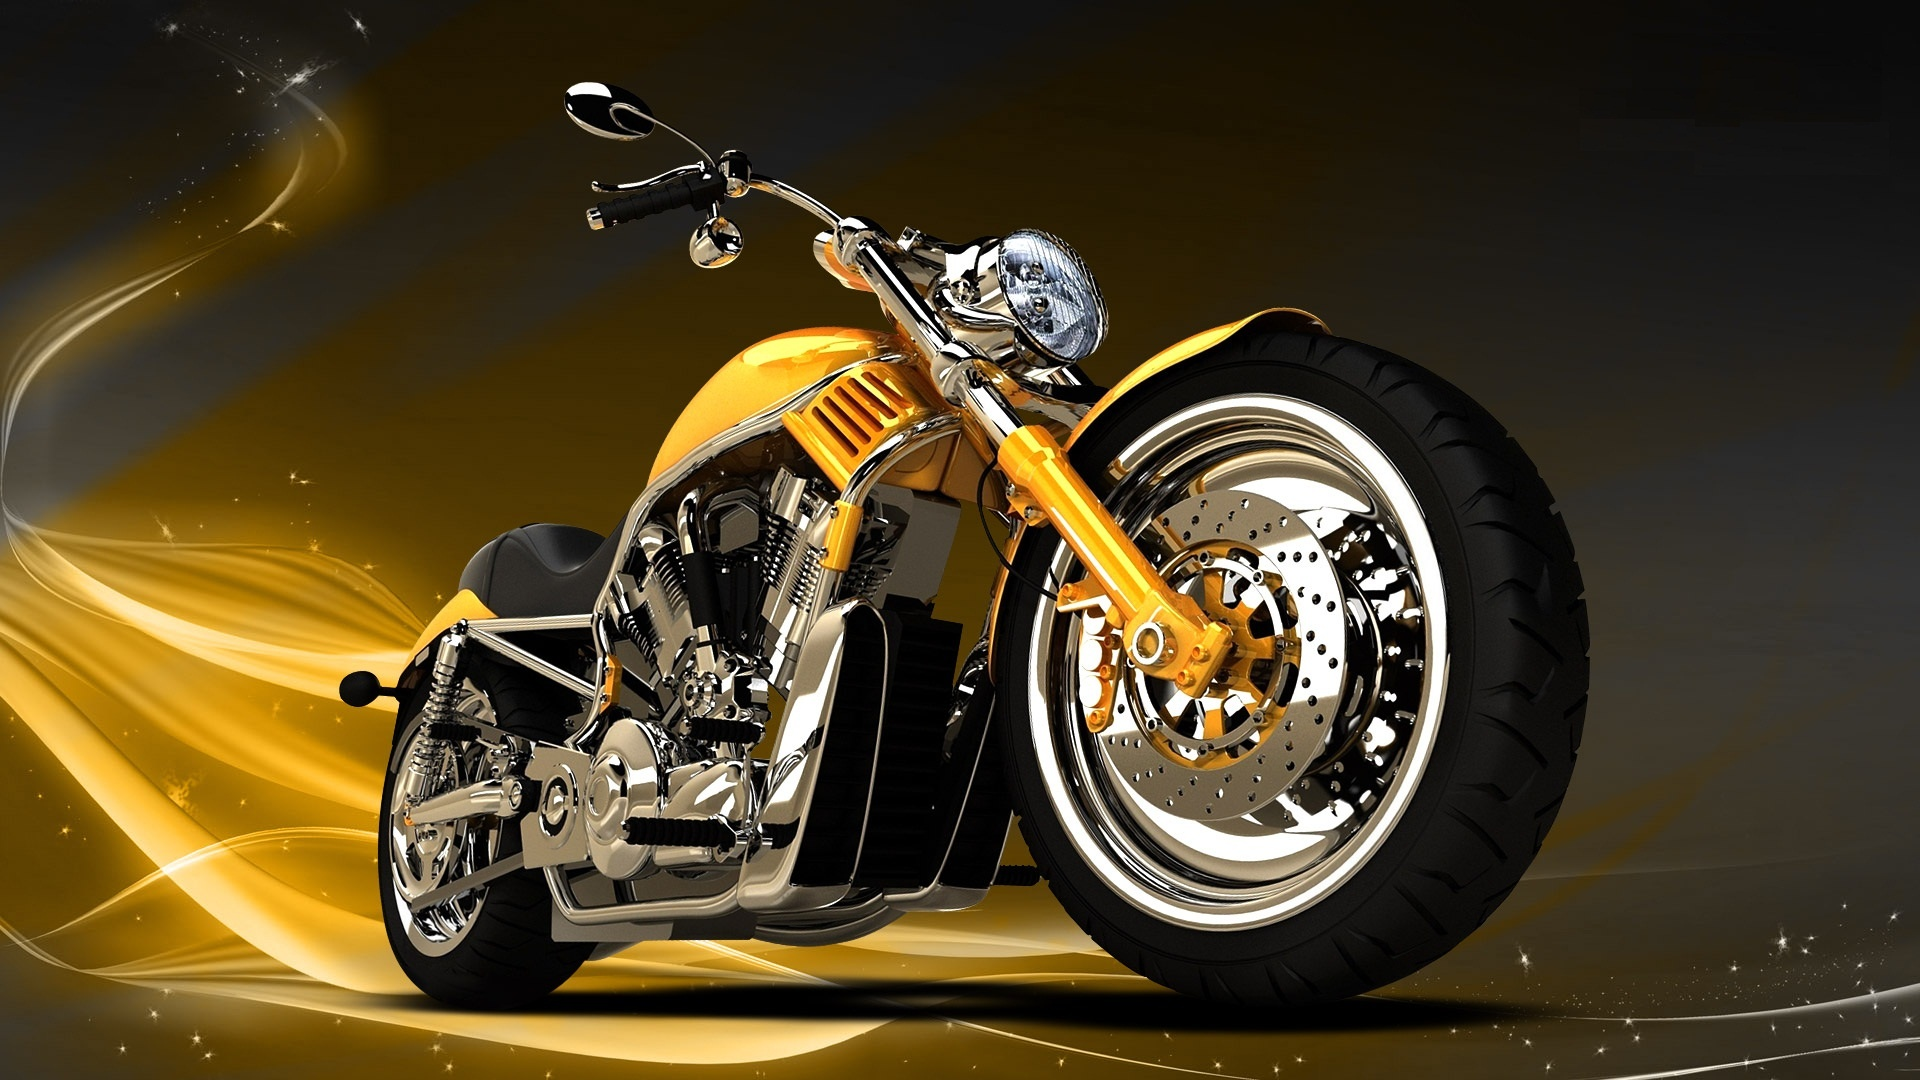 Golden Chopper Bikes Wallpapers - 1920x1080 - 486092